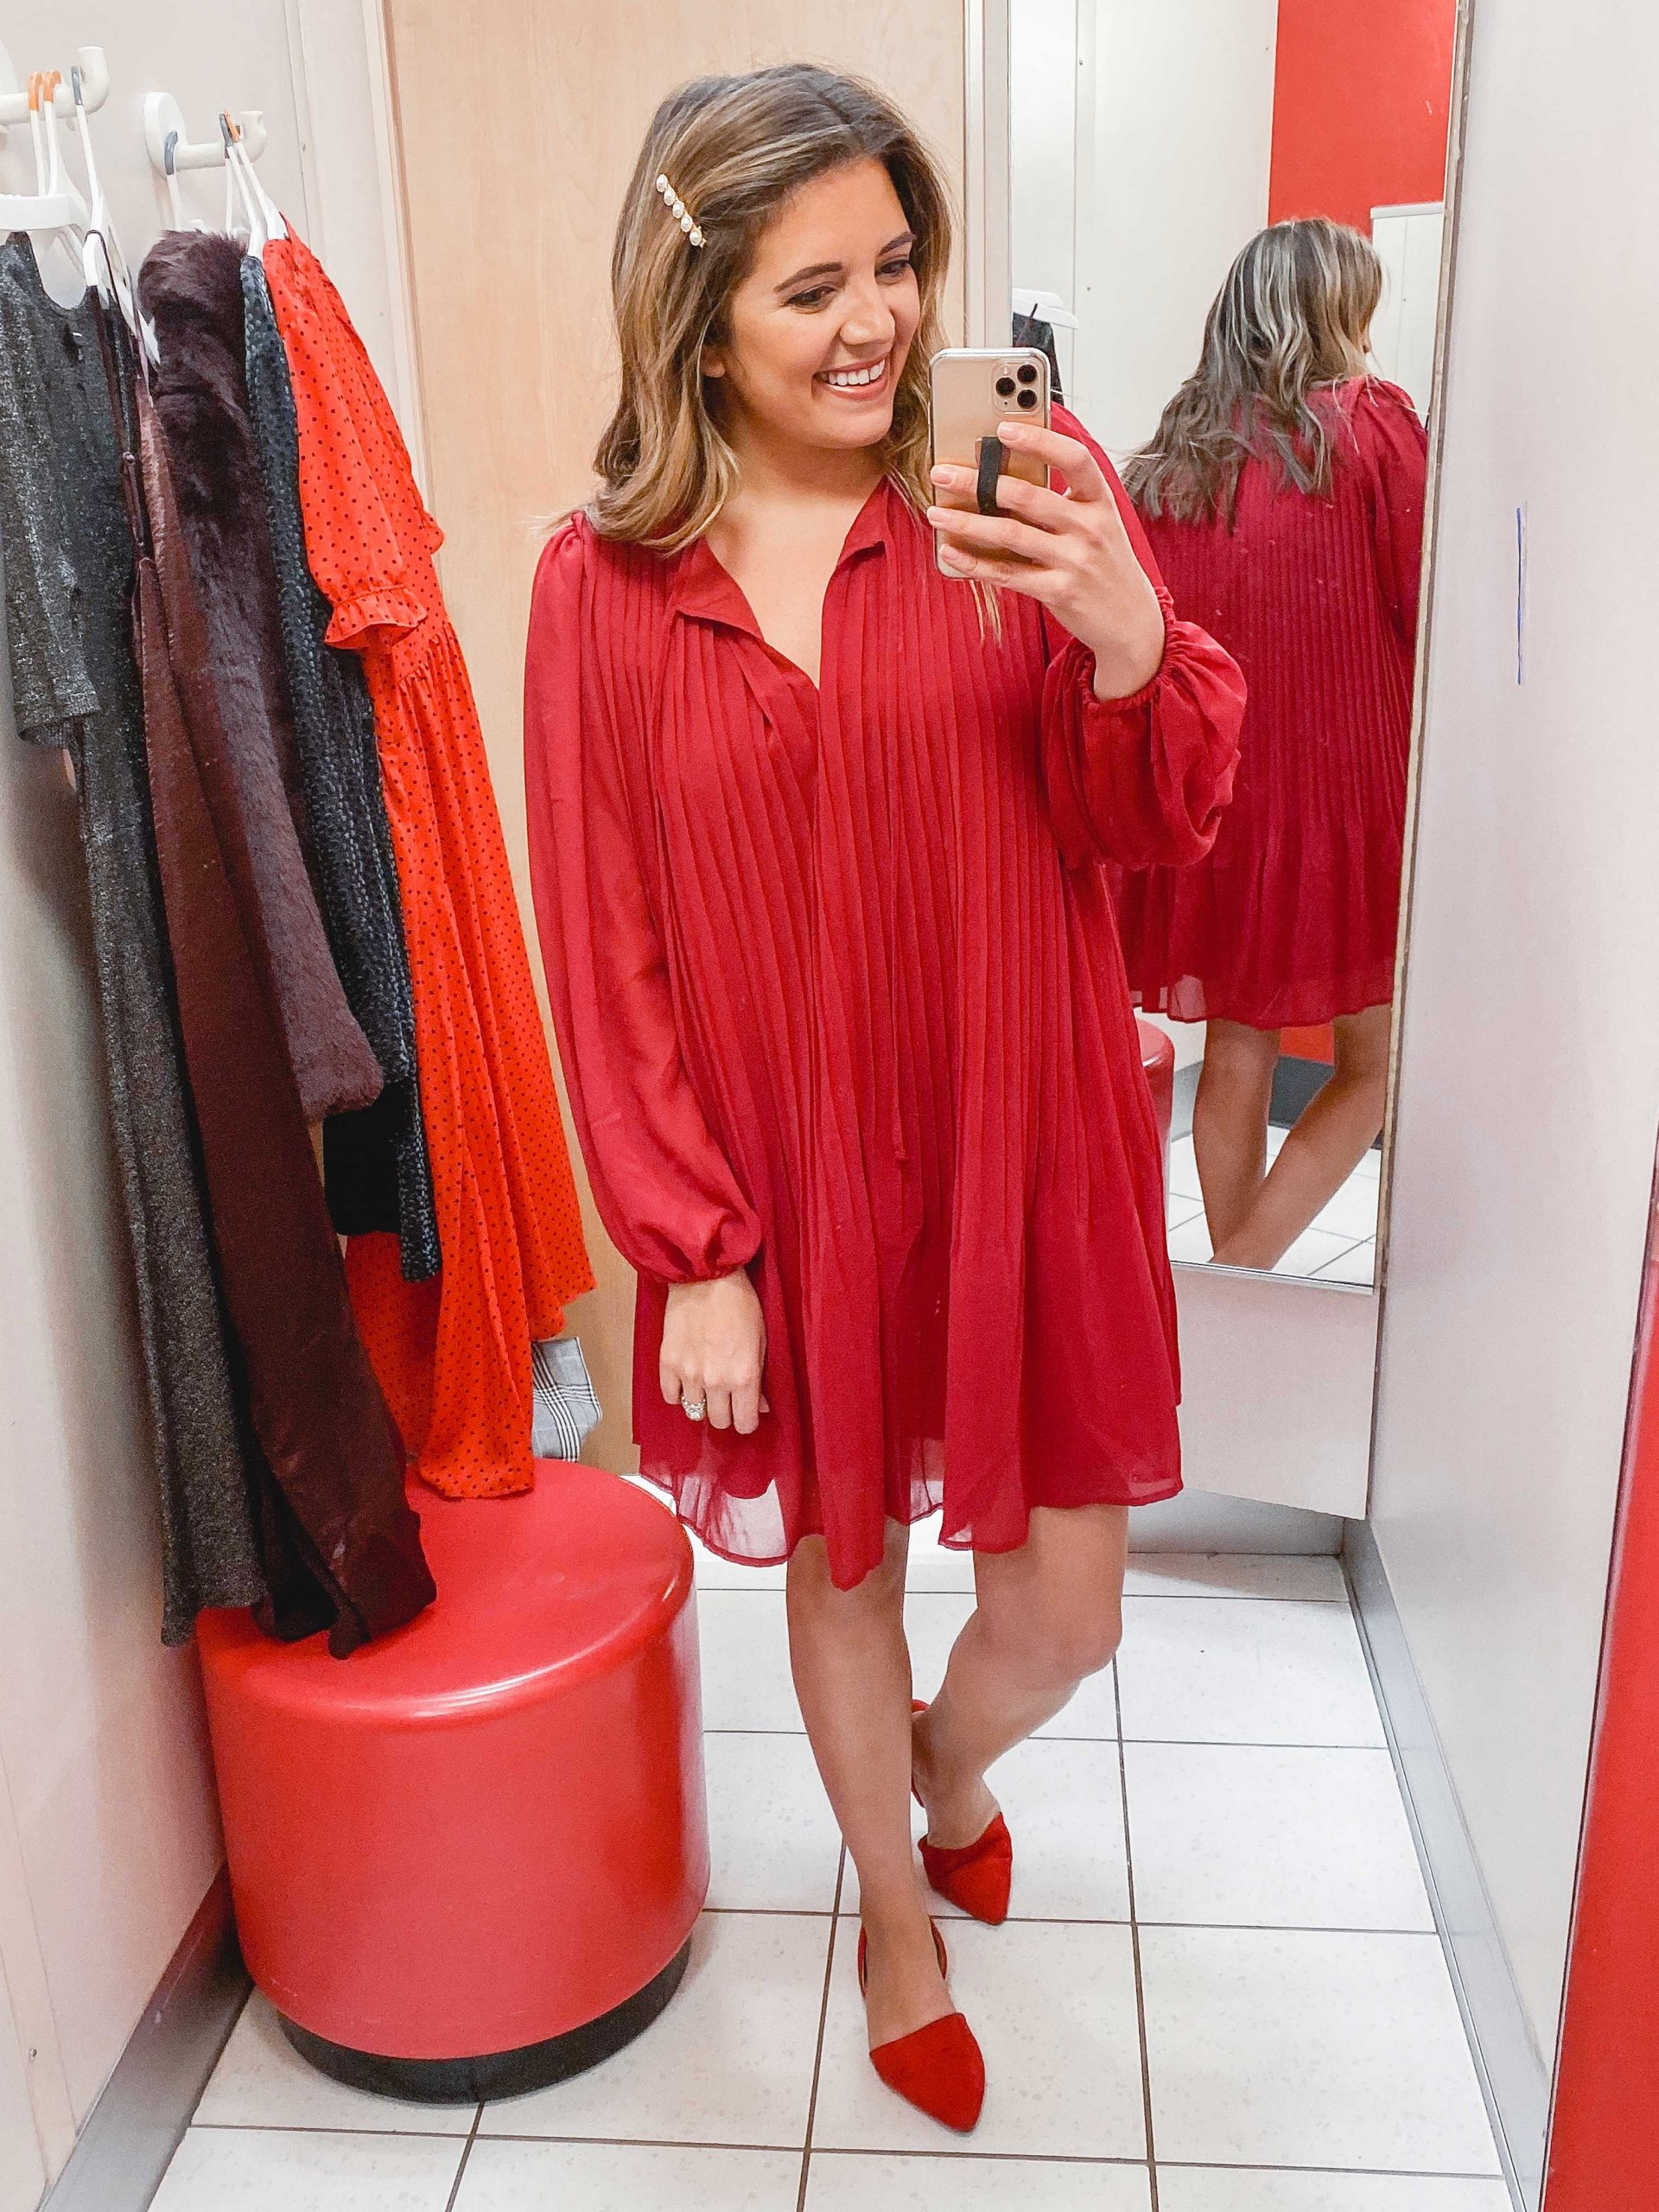 Virginia blogger, Lauren Dix, shares over 10 Target holiday outfits and a Target winter try on!